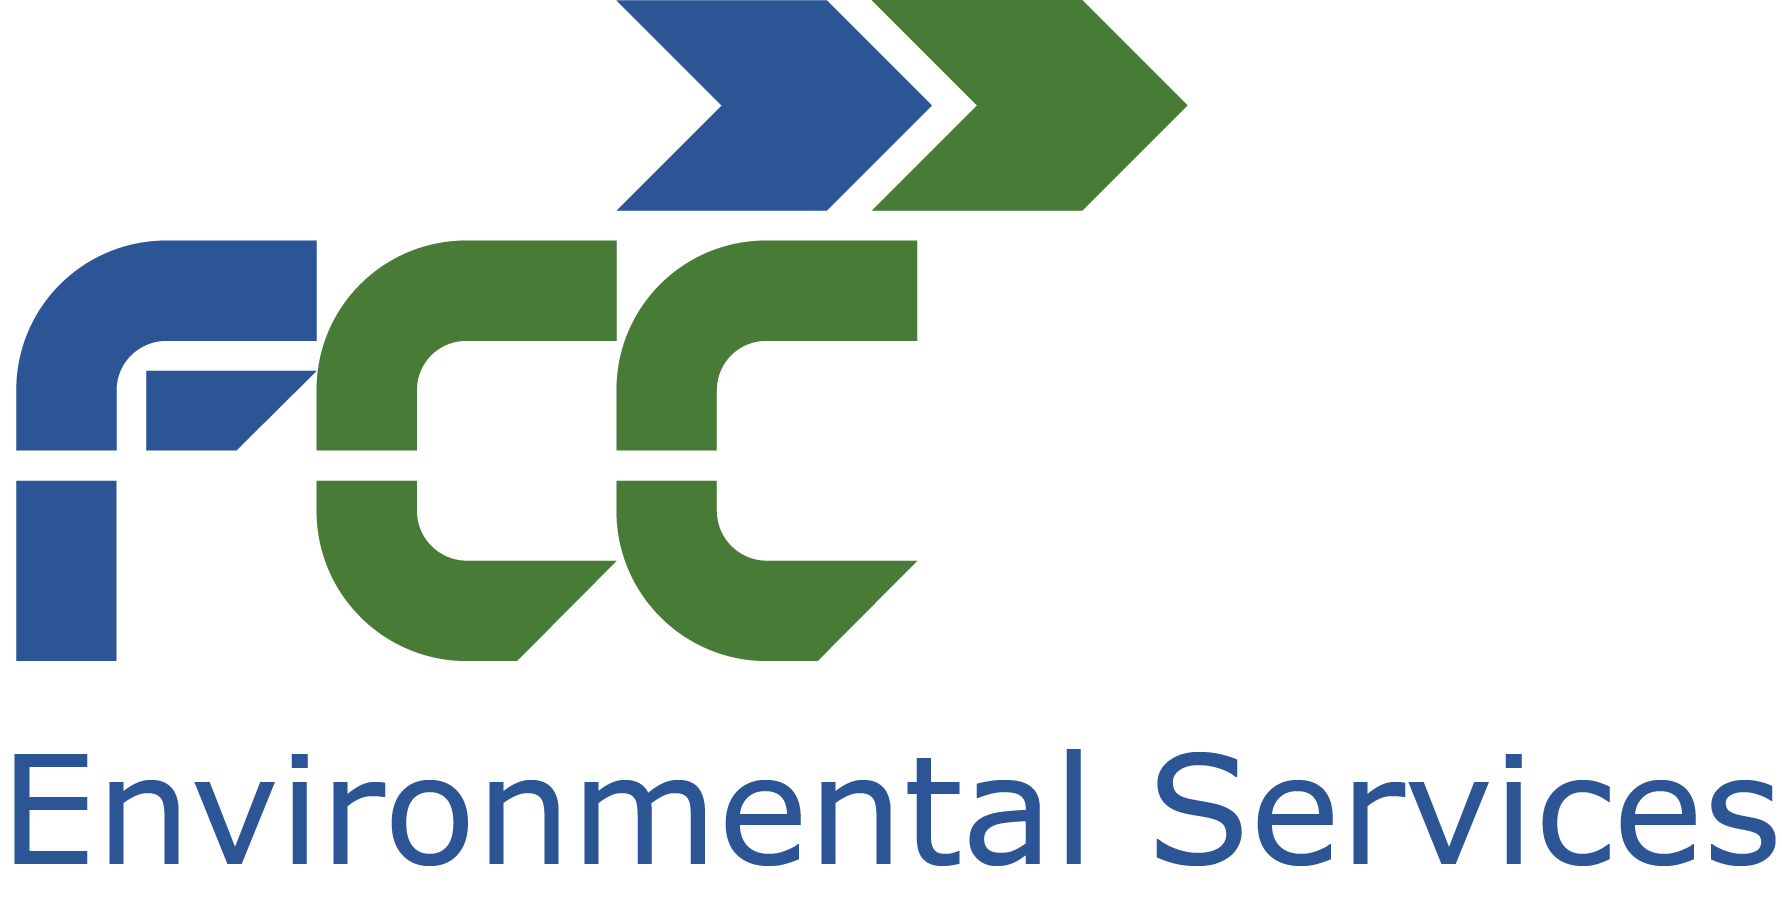 FCC Environmental Services USA